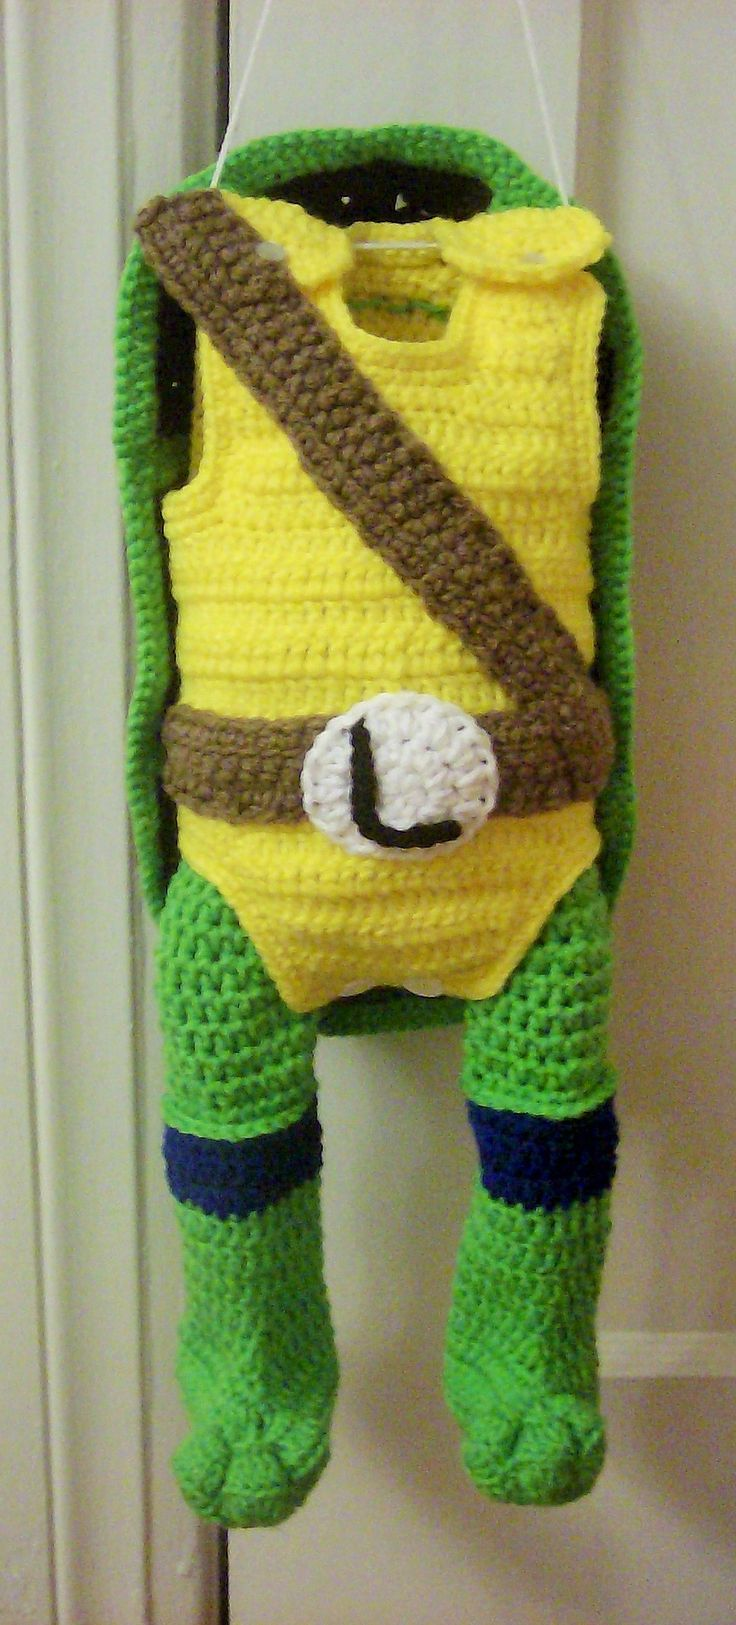 Crochet Ninja Turtle Costume :)